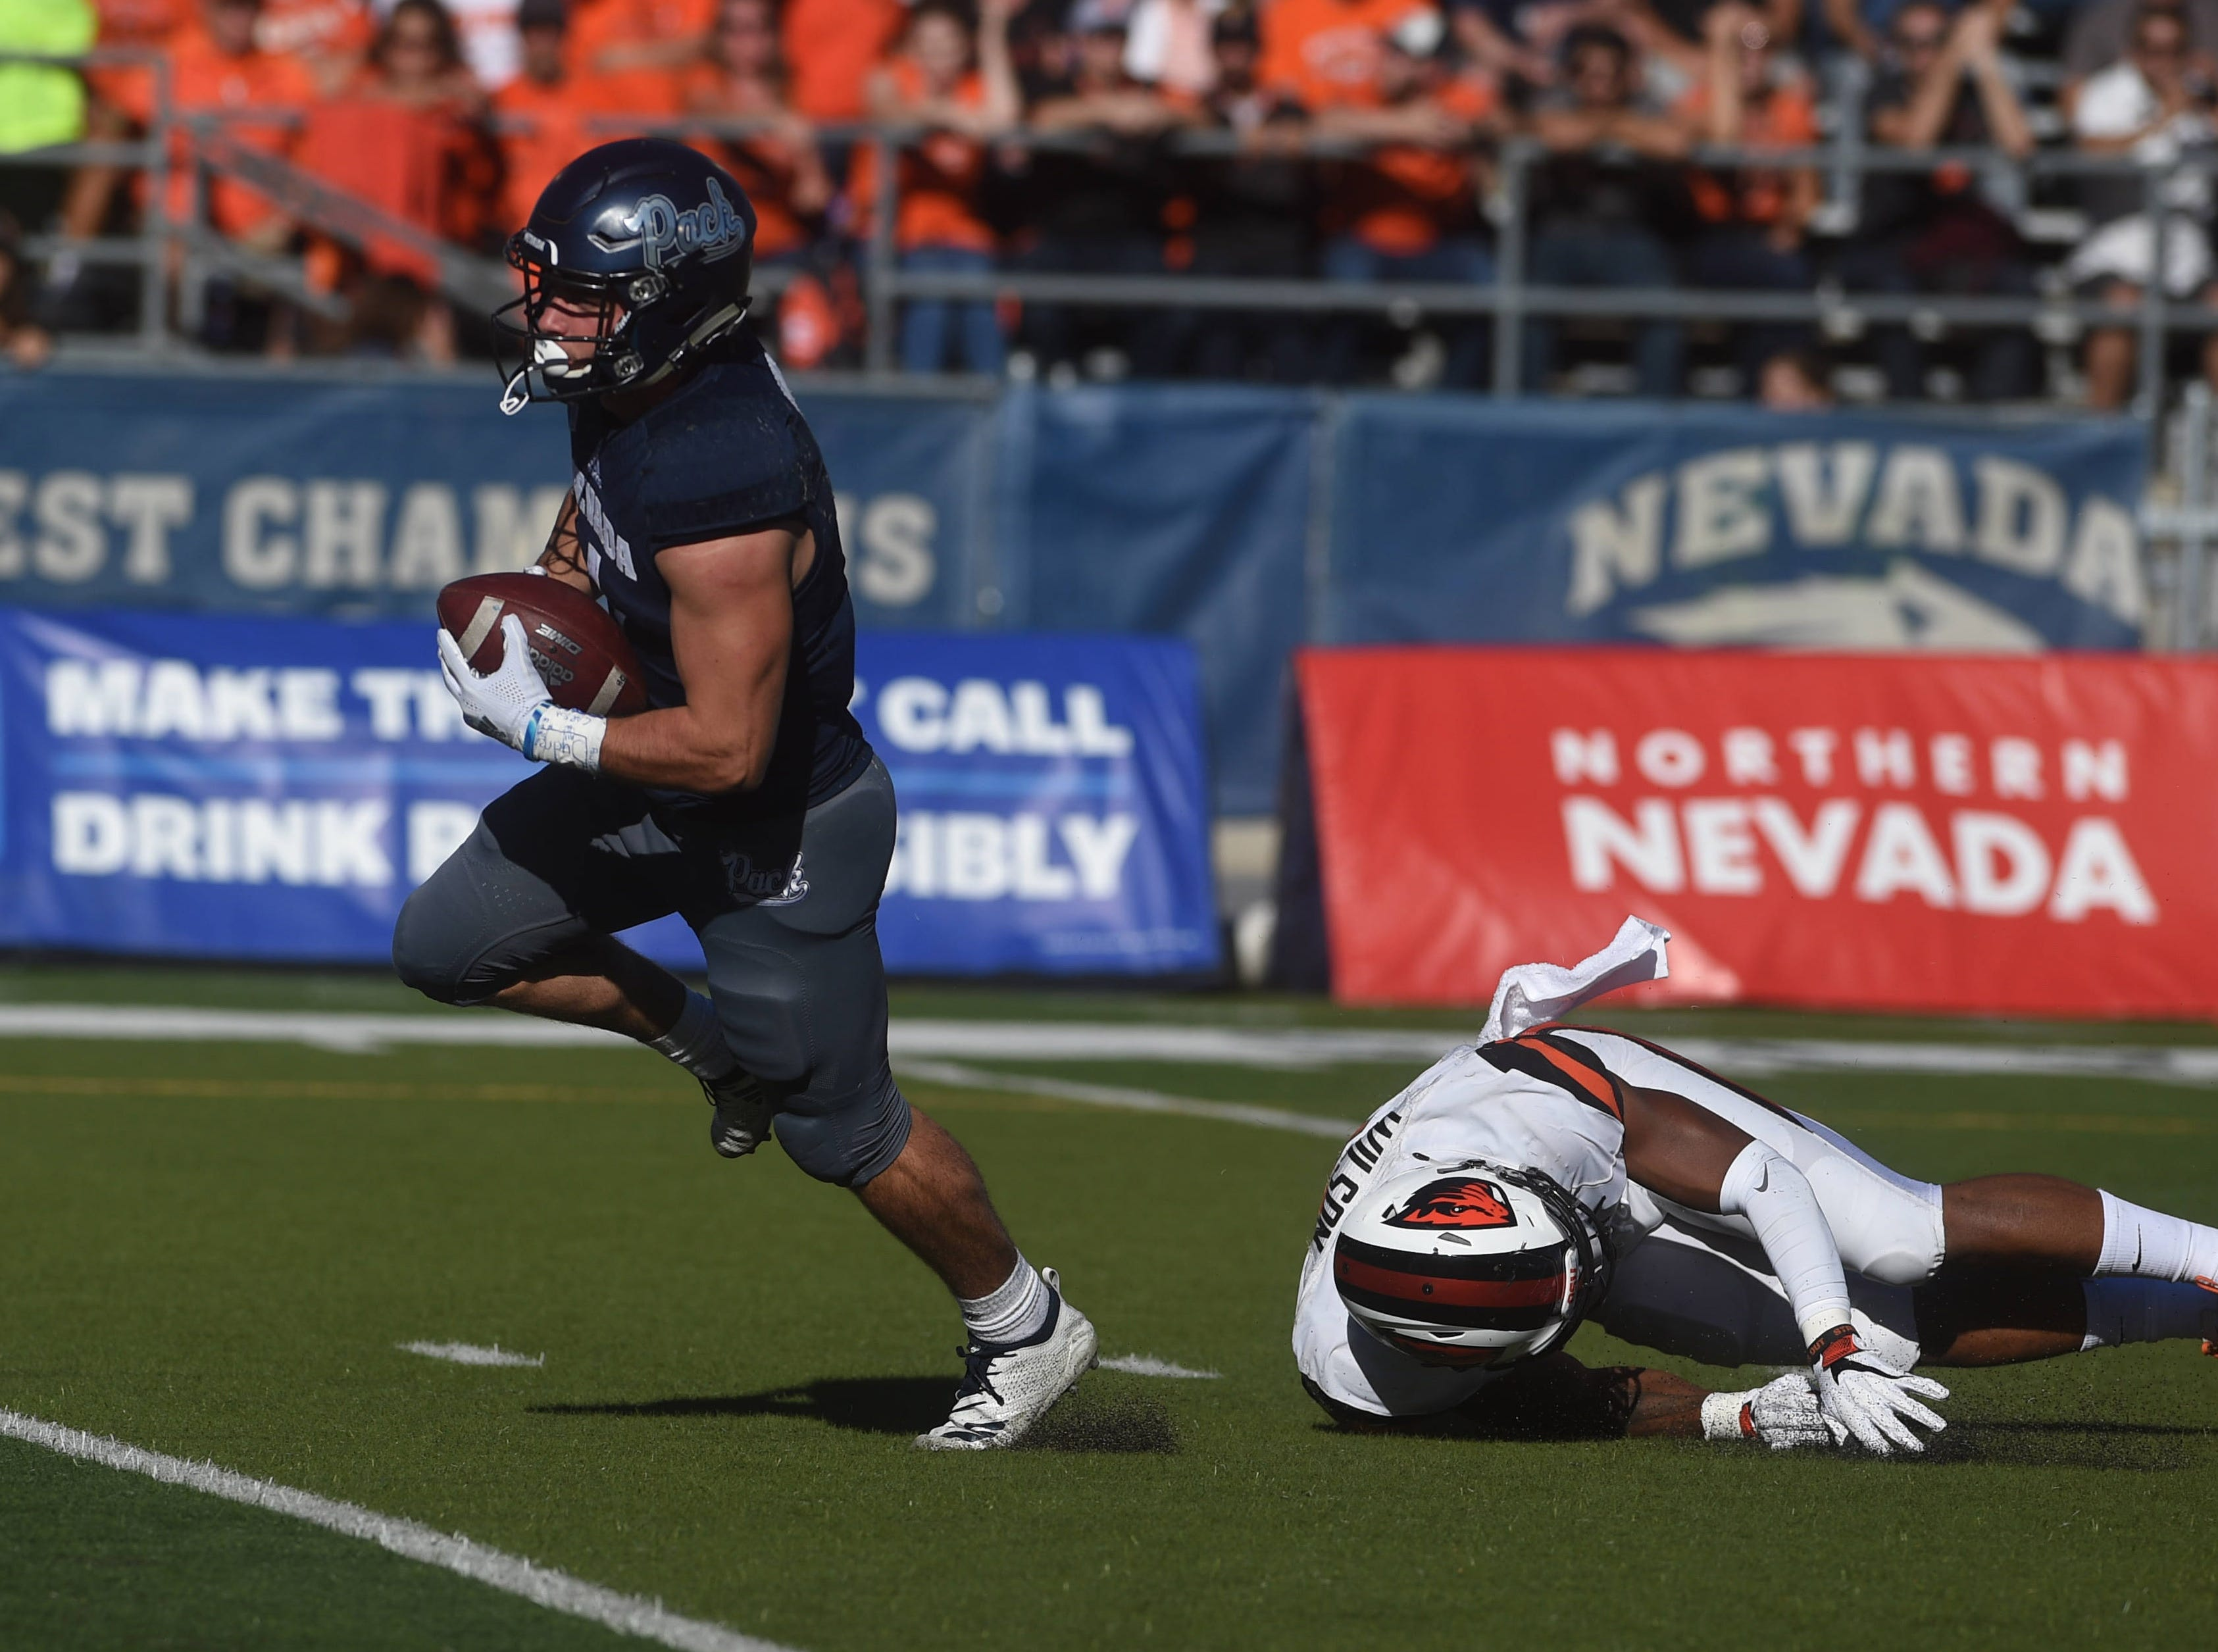 Nevada takes on Oregon State during their football game at Mackay Stadium in Reno on Sept. 15, 2018.